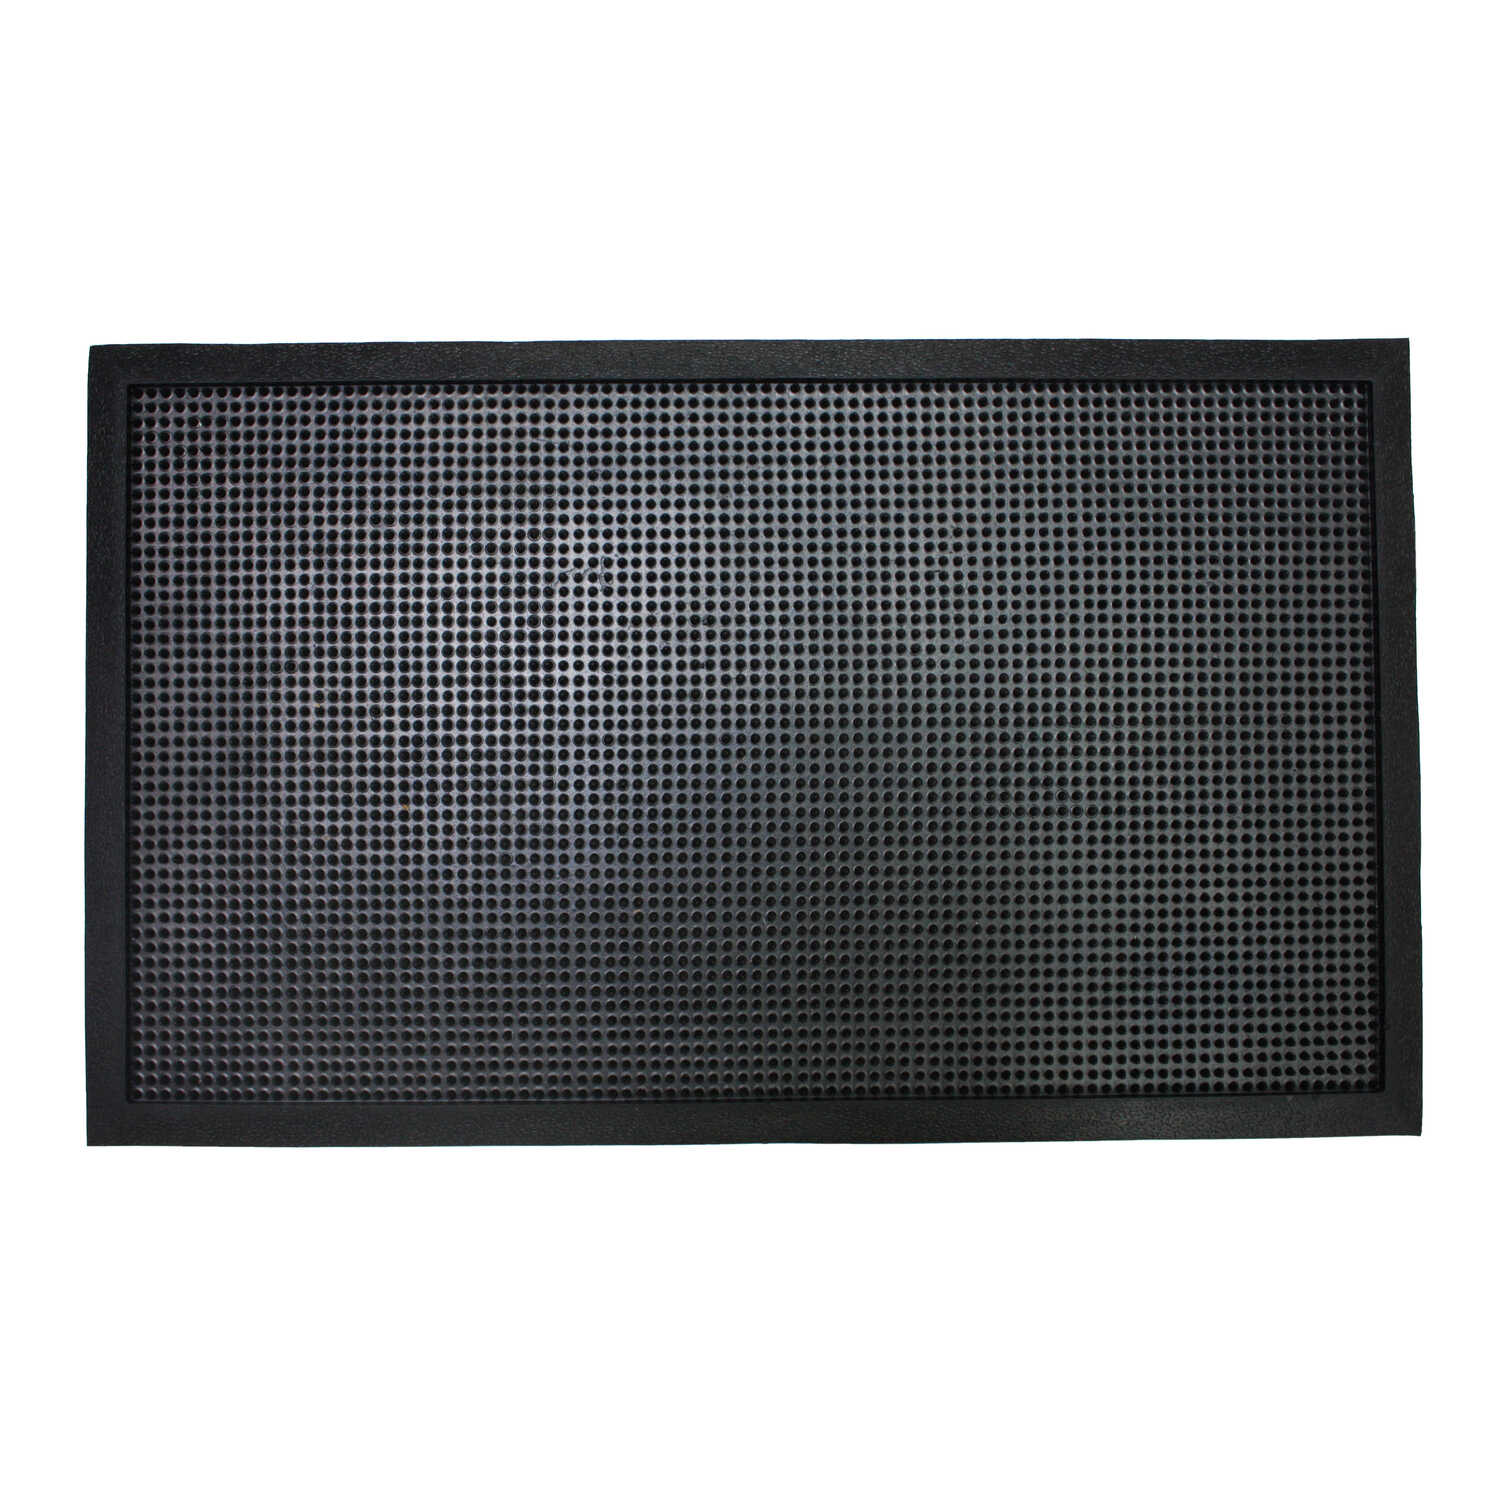 J & M Home Fashions  18 in. L x 30 in. W Black  Door Mat